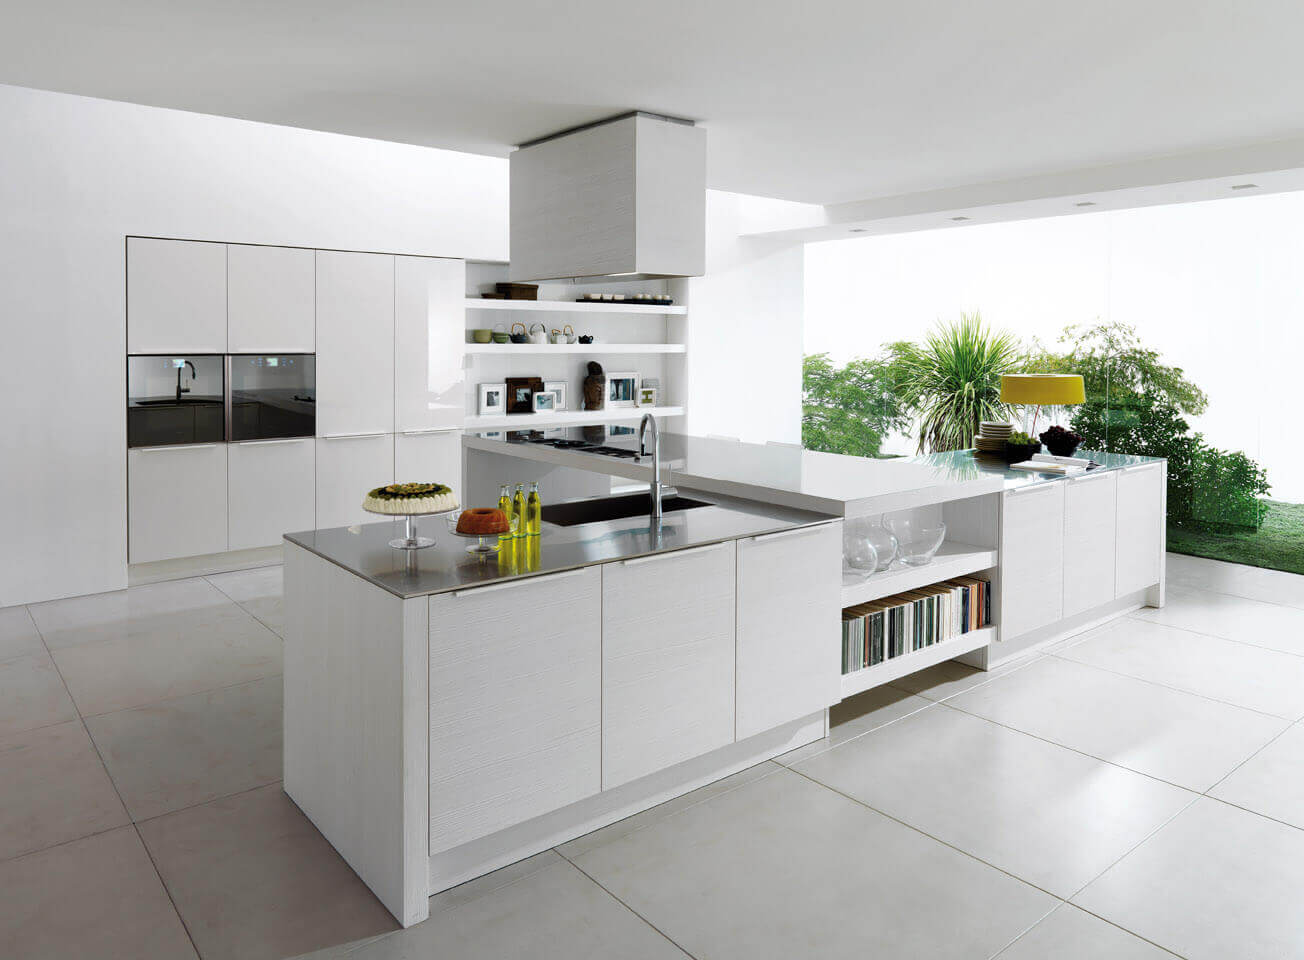 The openness of a kitchen space is usually its best asset. This modern kitchen design with white cabinets meticulously used this fact to ensure that the room looks even bigger with the use of reflective countertops and white surfaces